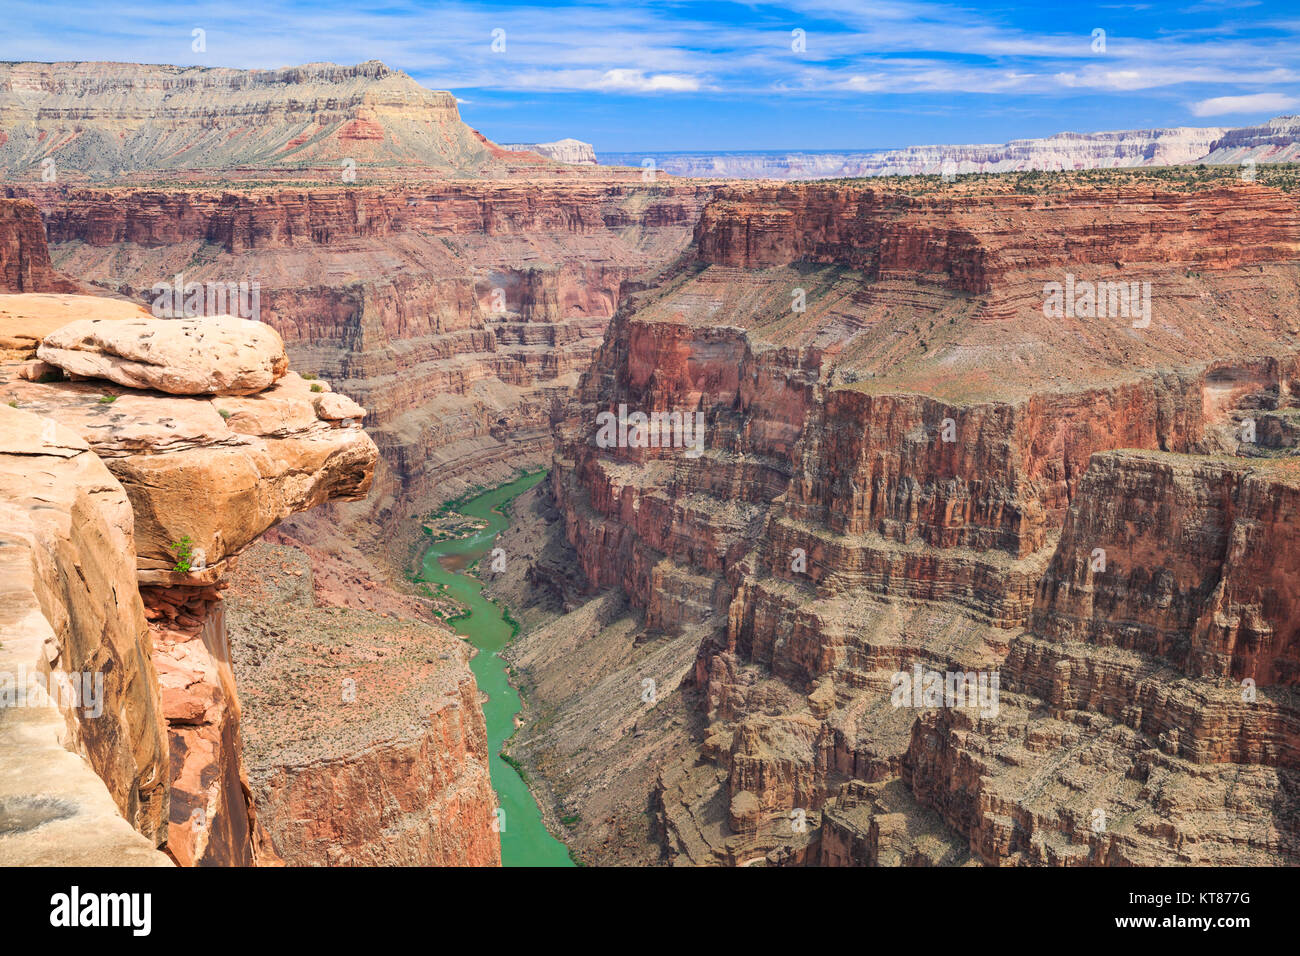 colorado river viewed from saddle horse trail at toroweap overlook in grand canyon national park, arizona - Stock Image